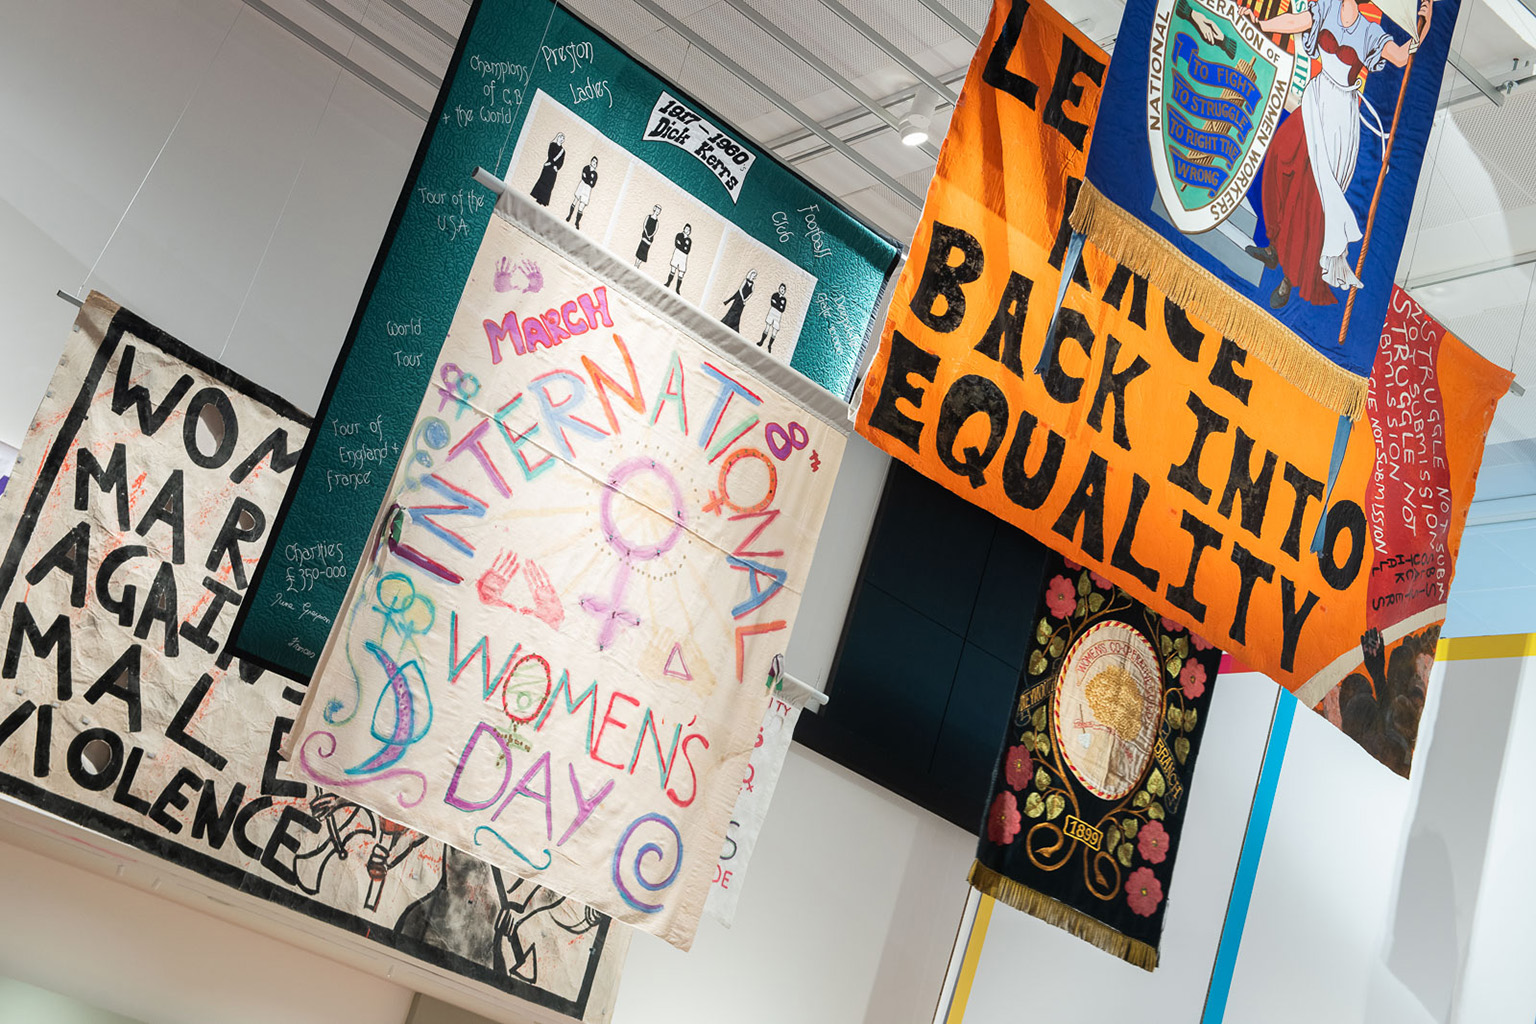 Banners loaned from Southall Black Sisters, Bishopsgate Institute, People's History Museum, Sisters Uncut, Feminist Archive South